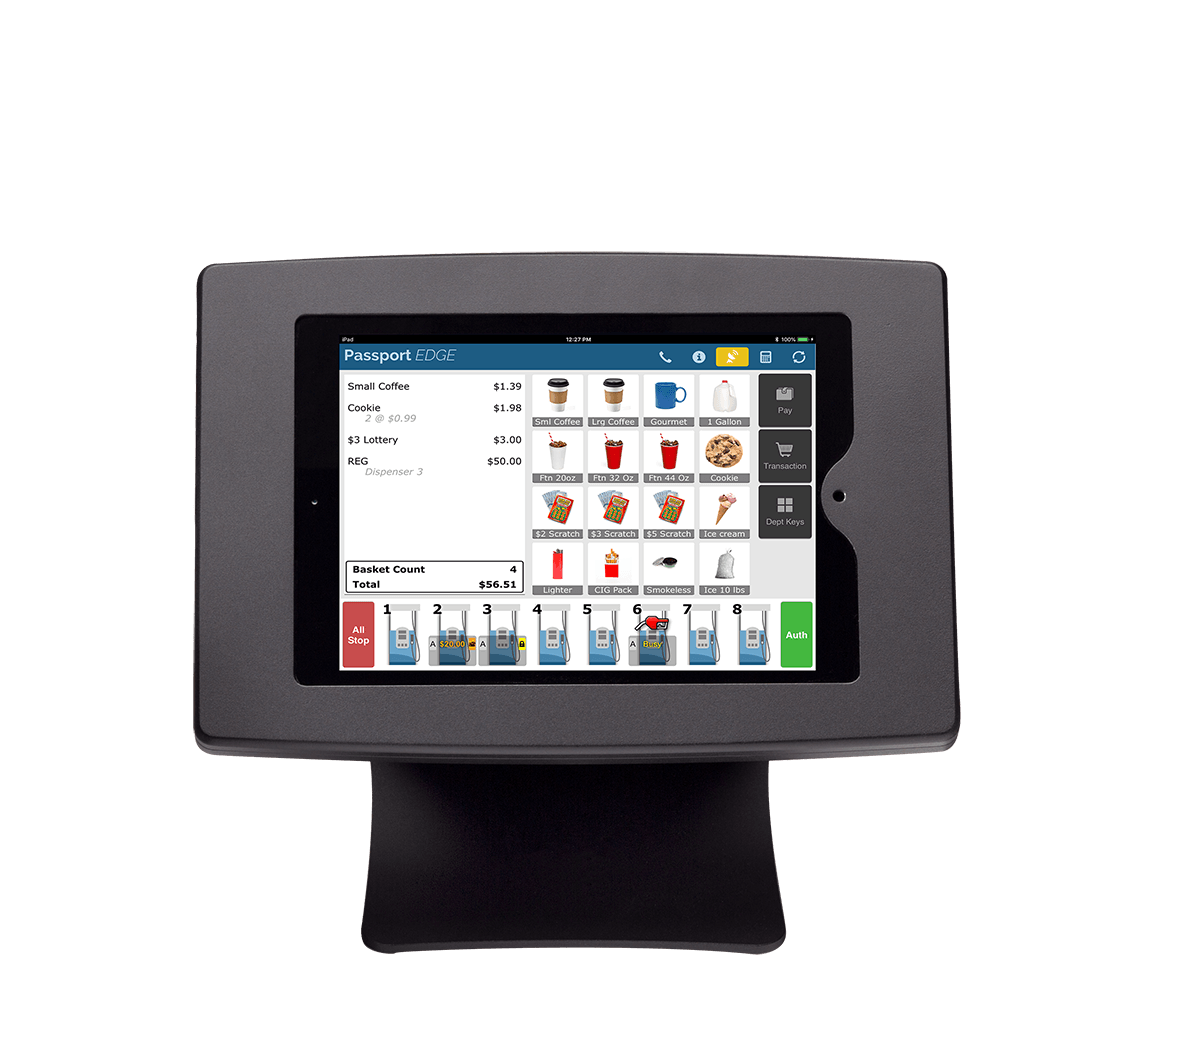 passport edge point of sale